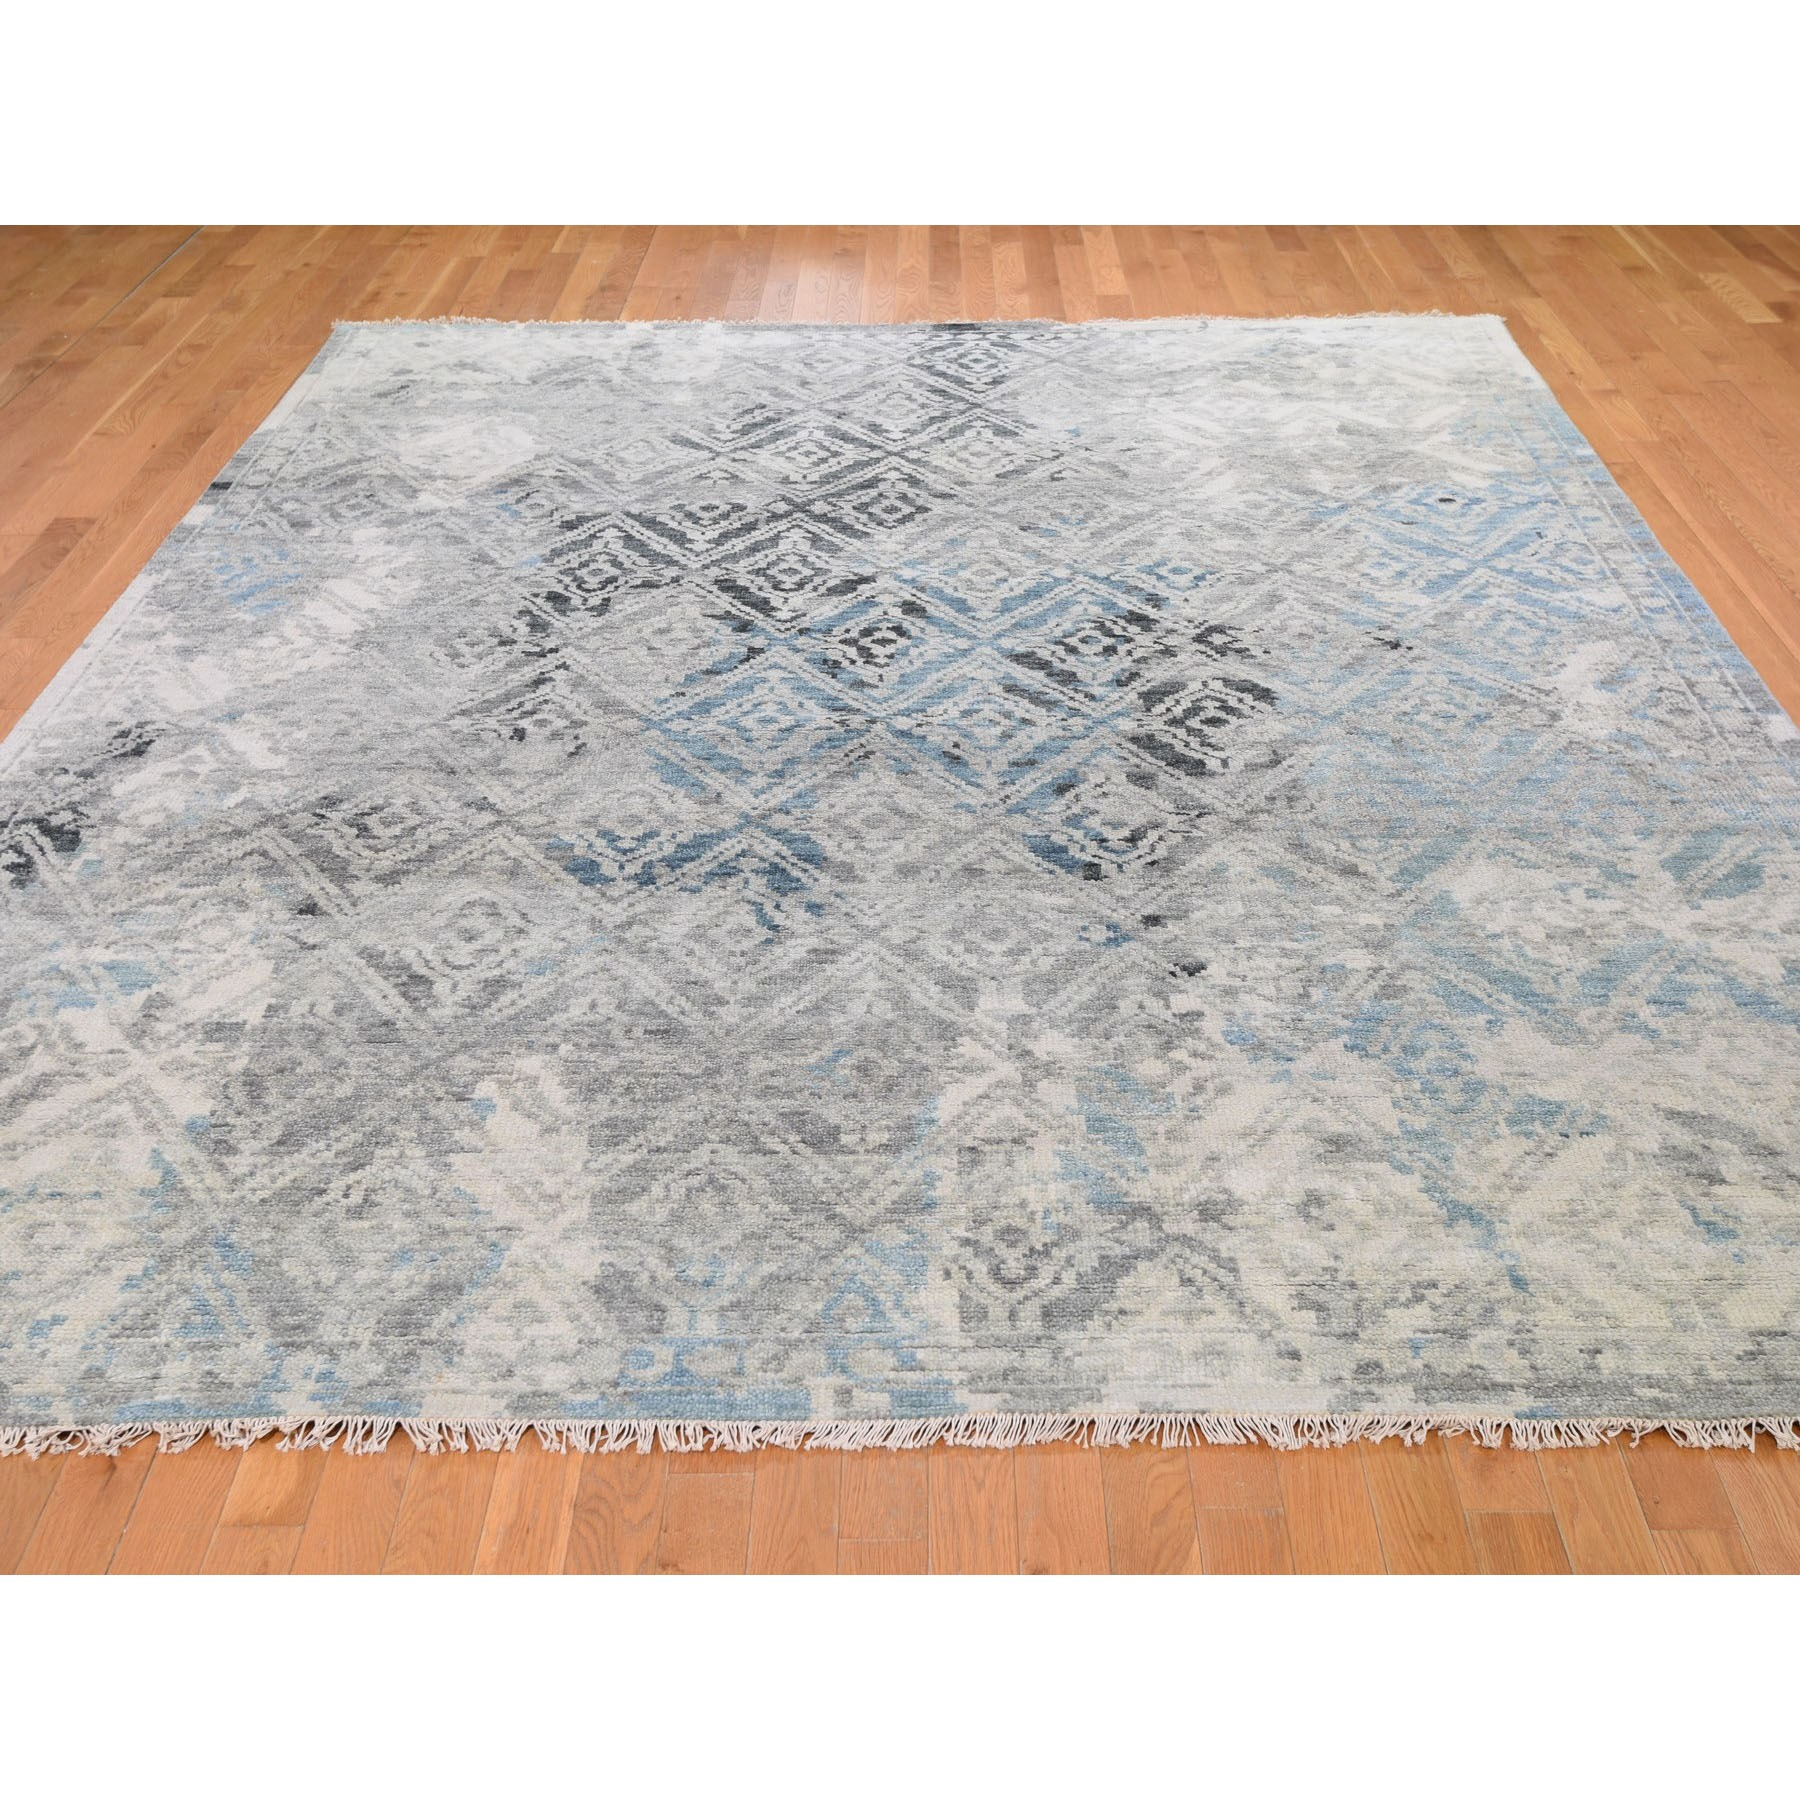 """9'x11'9"""" Gray Supple Collection Erased Mughal Design Hand Knotted Oriental Rug"""